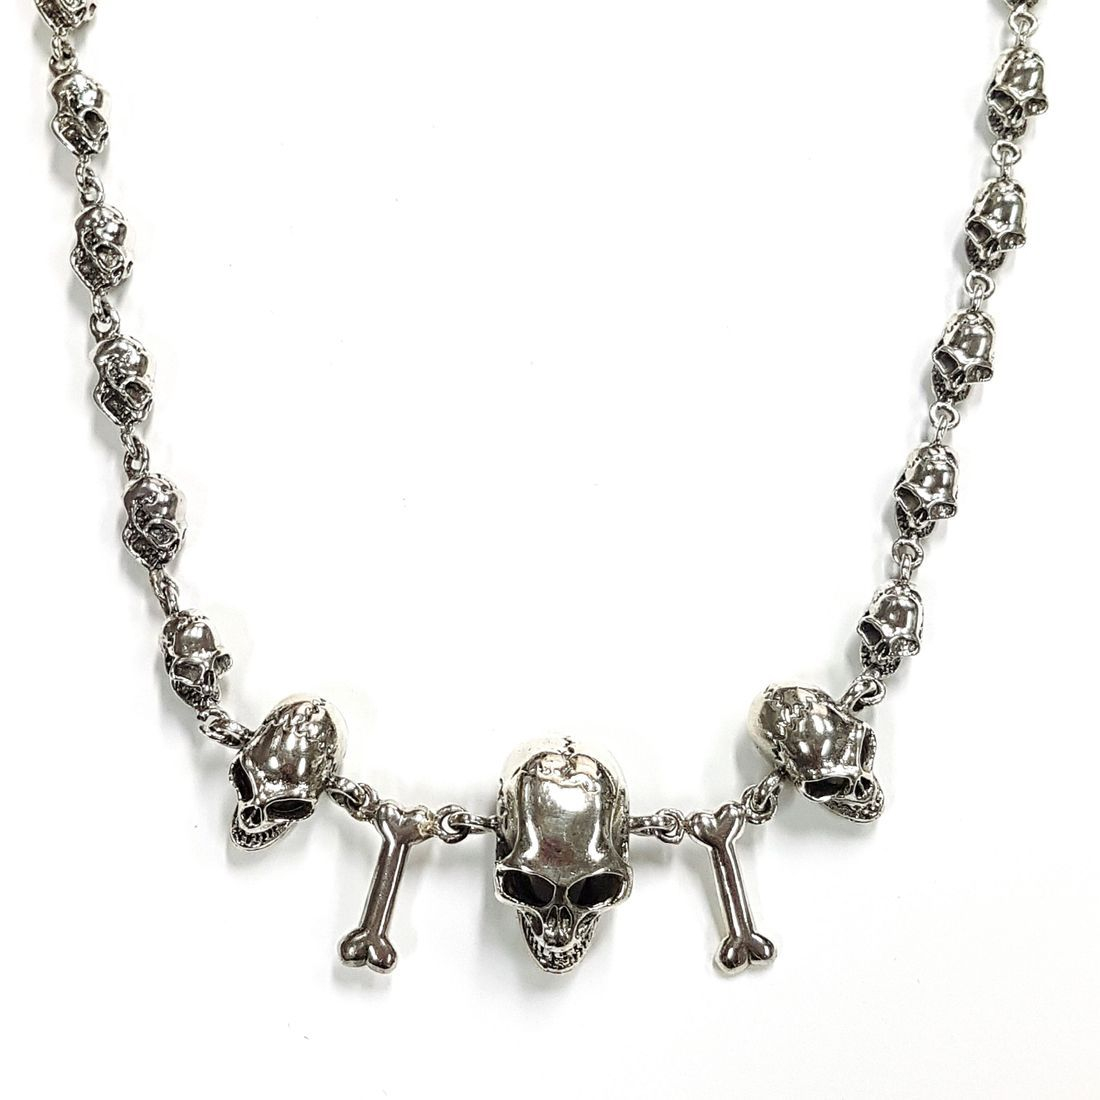 Solid Silver Skull & Bones Chain   available at Kazbah online and our Leicester City Centre Shop